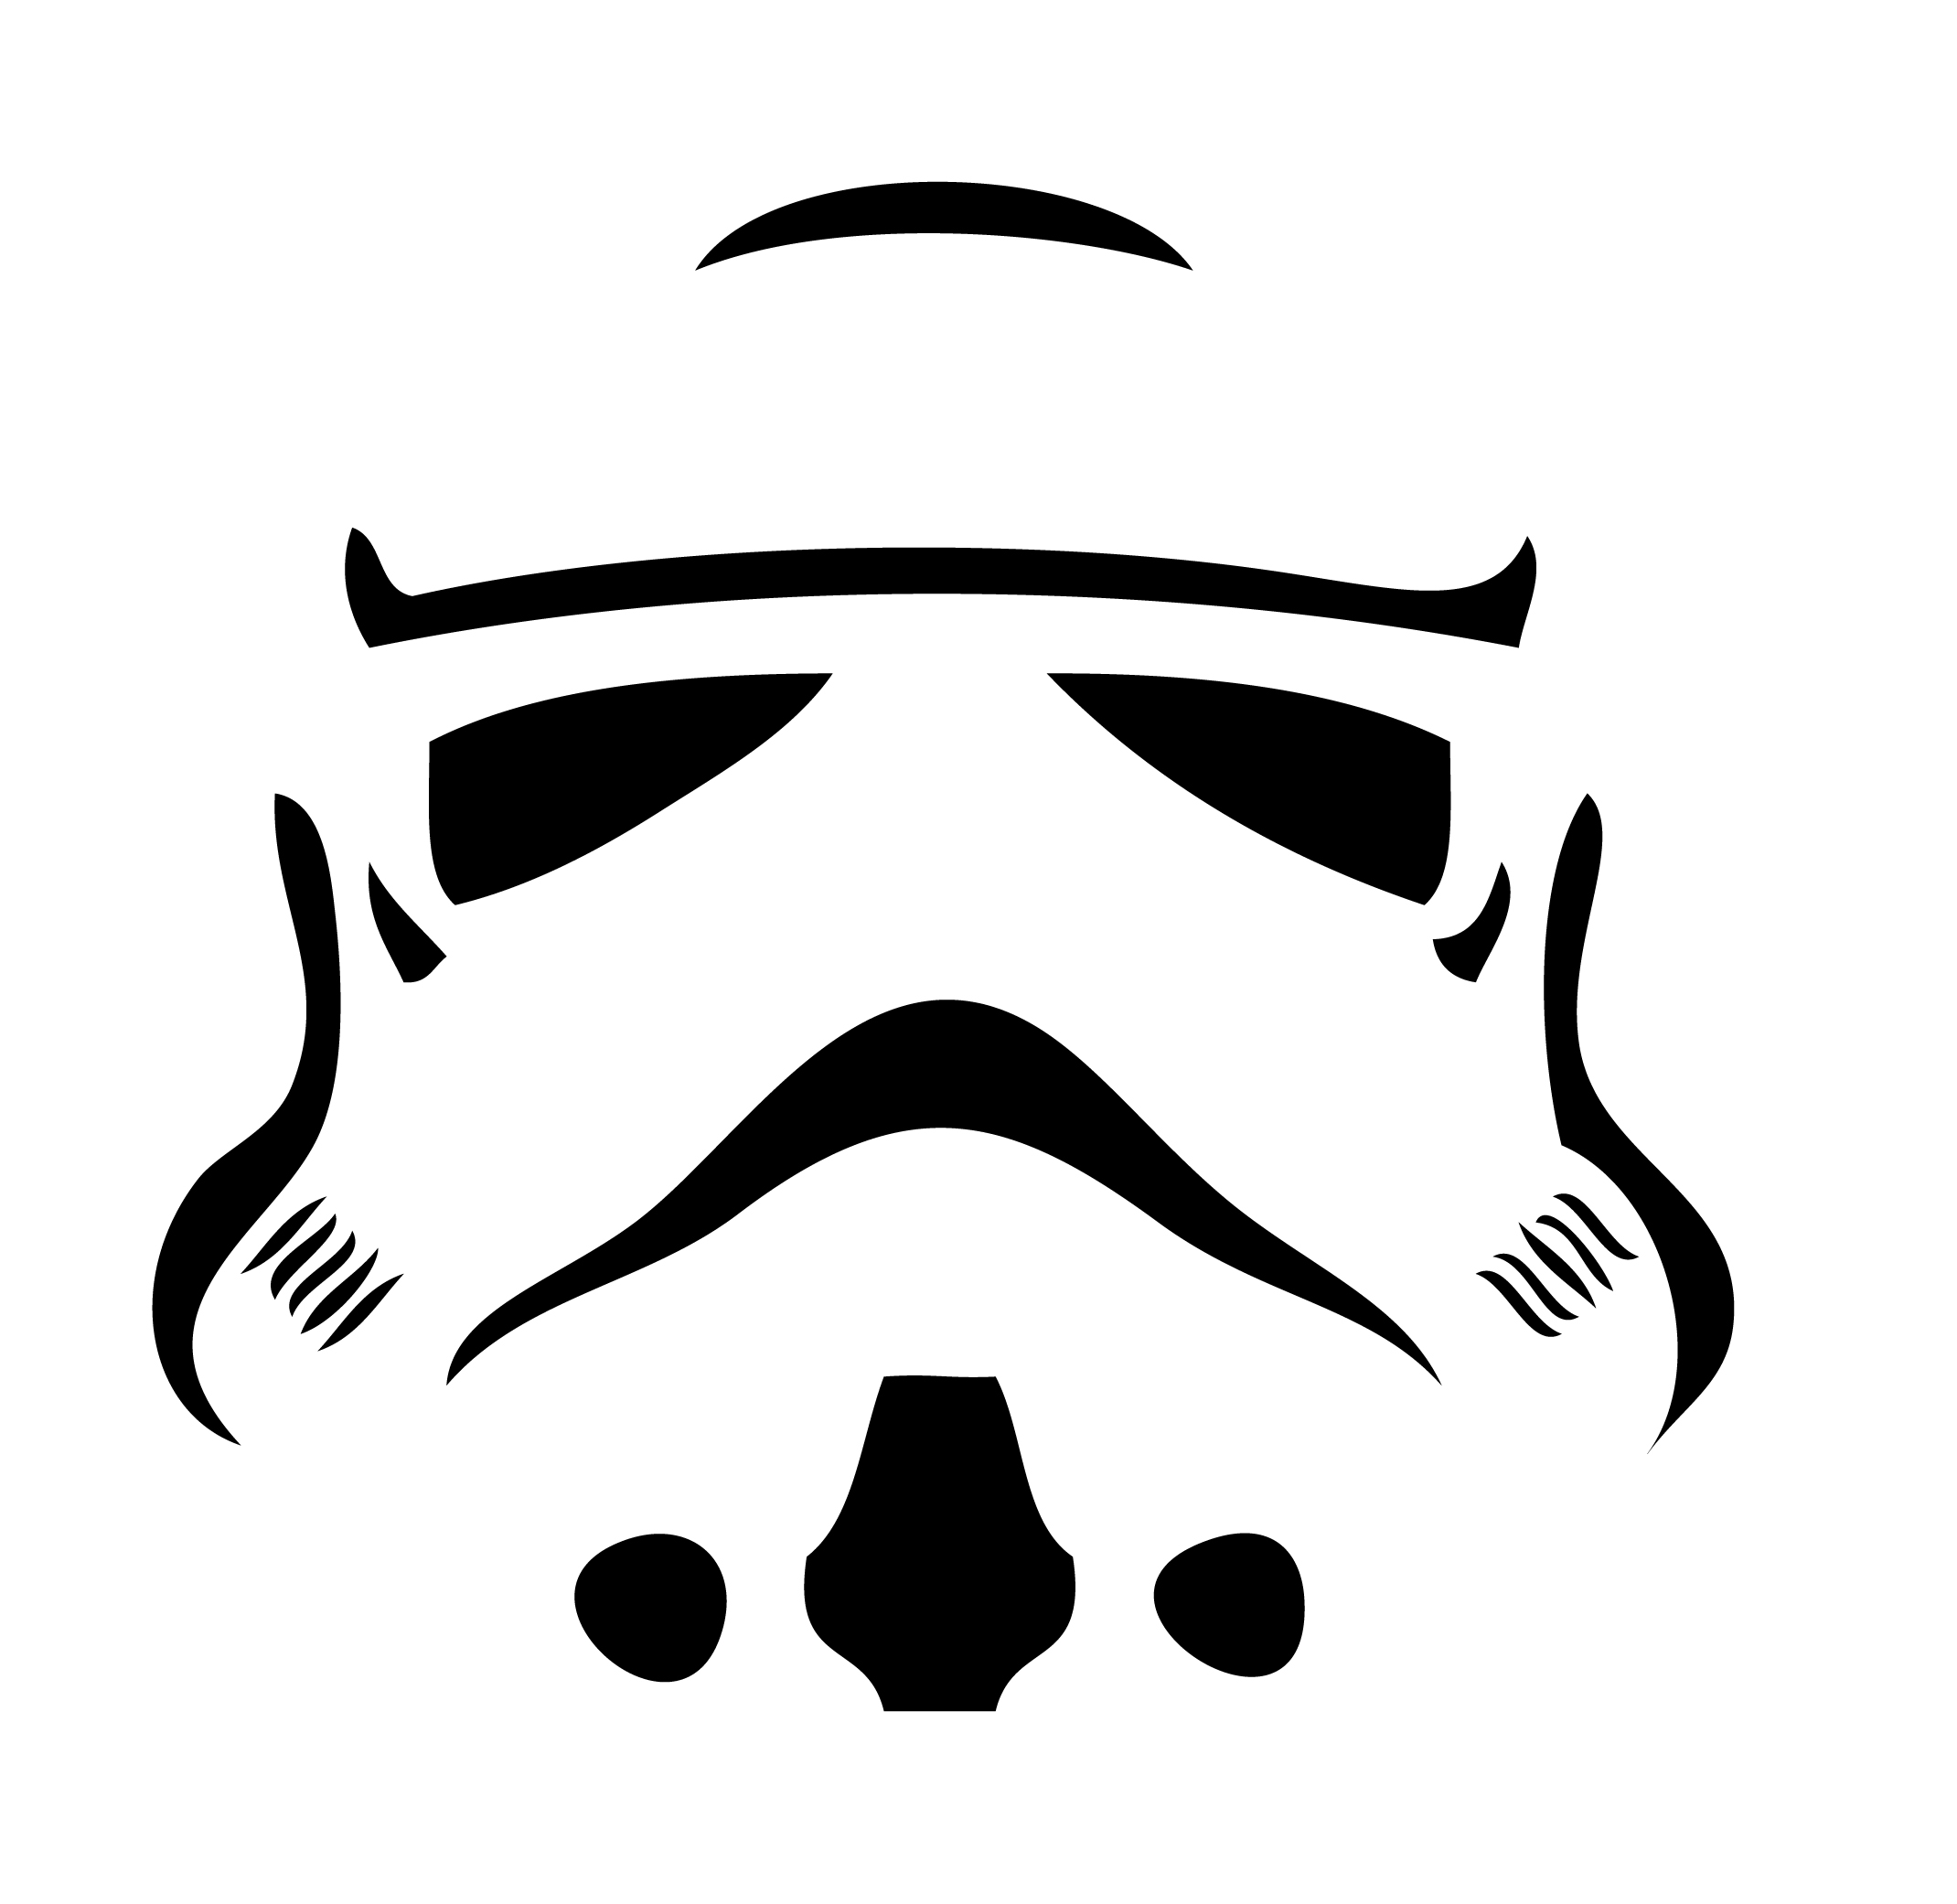 Stormtrooper clipart #2, Download drawings